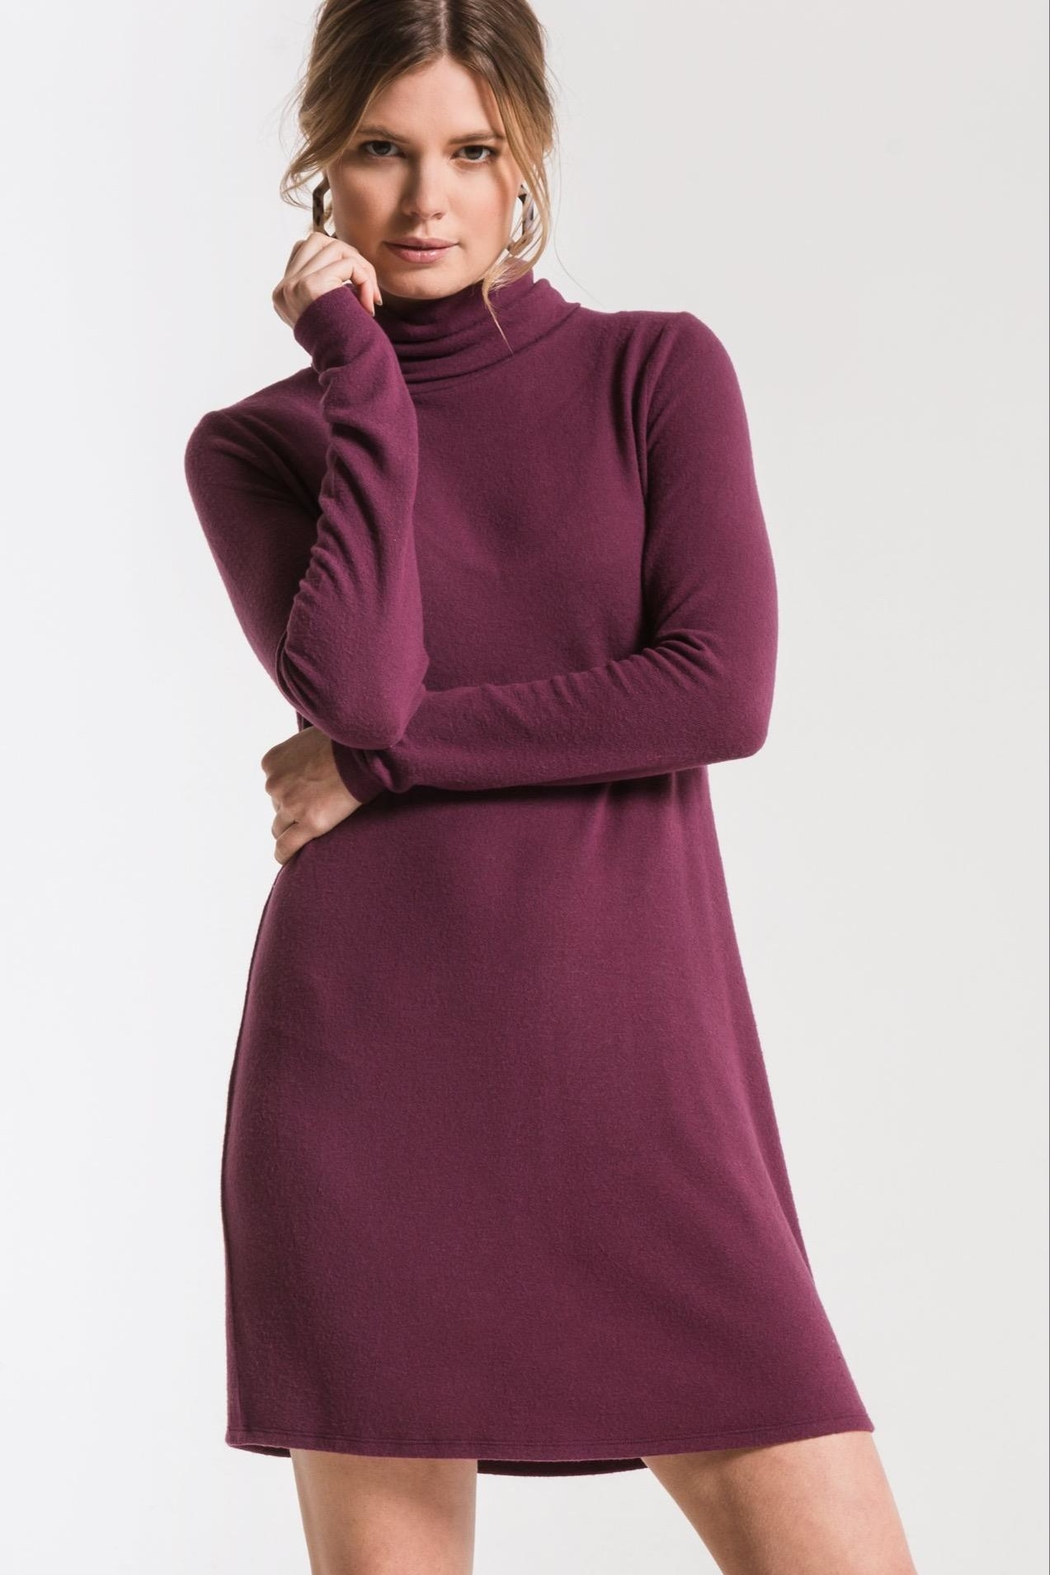 z supply Turtleneck Sweater Dress - Main Image